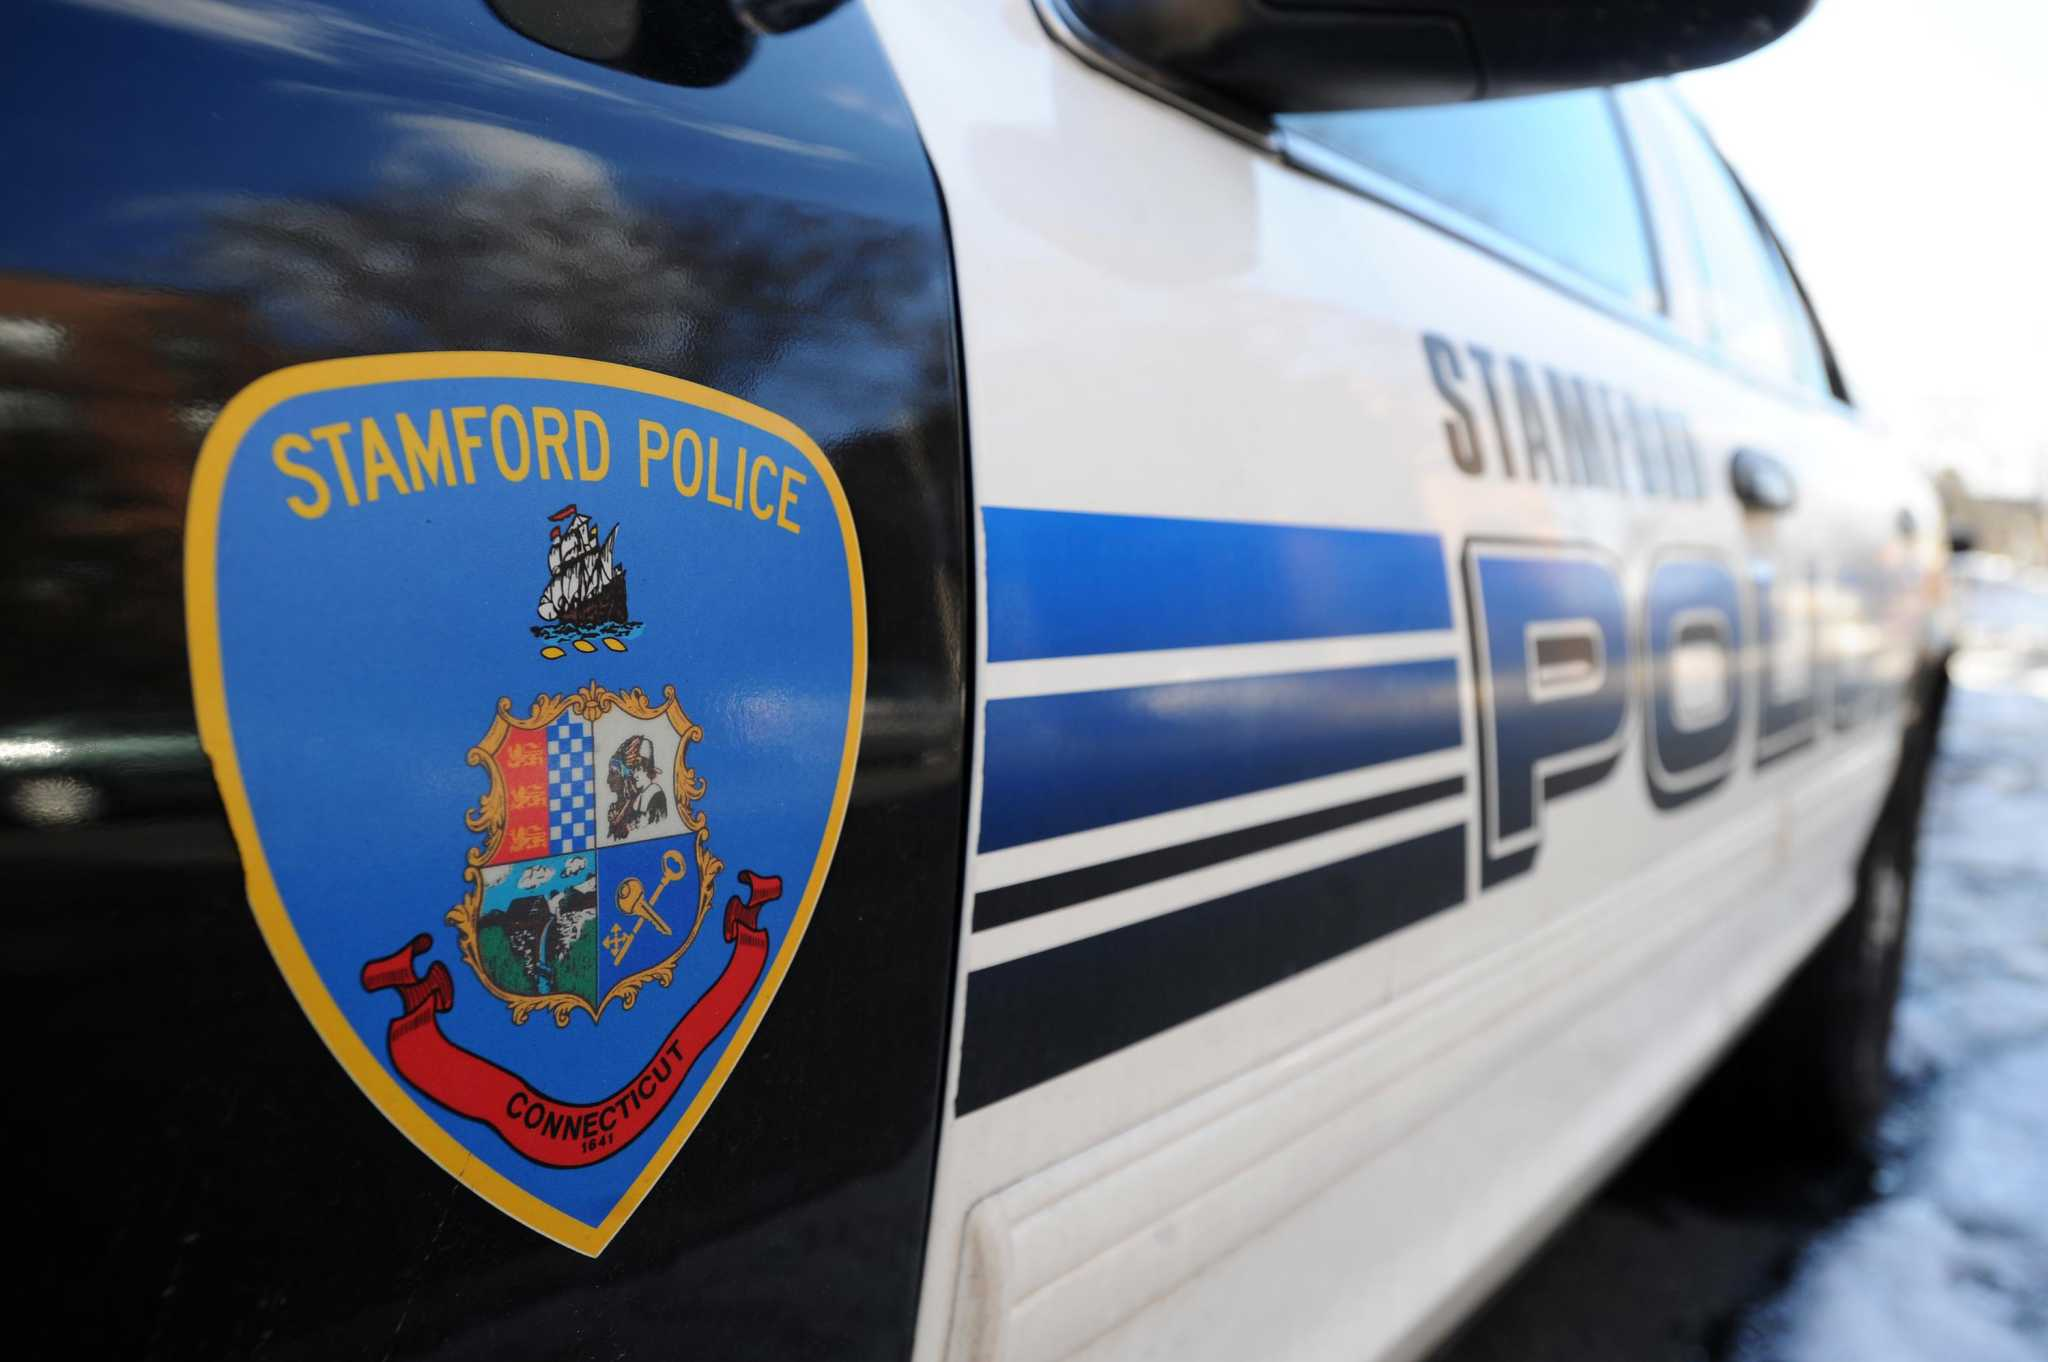 Health aide charged with ripping off Stamford woman